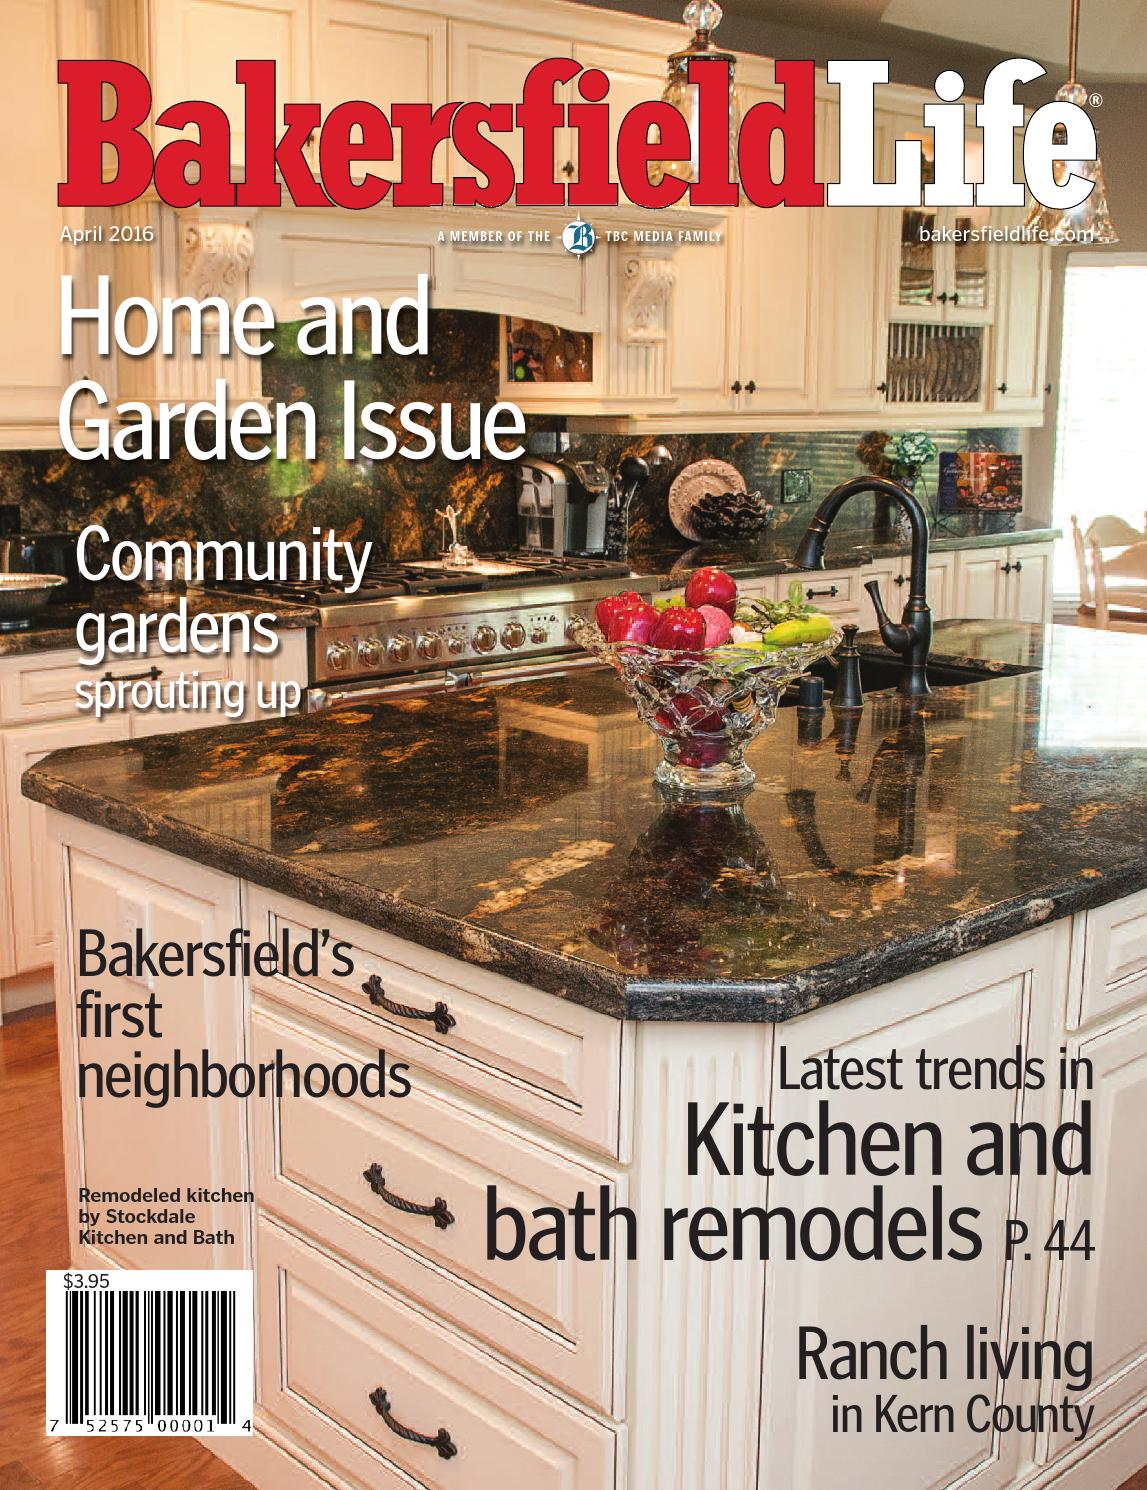 Bakersfield Life Magazine April 2016 By Tbc Media Specialty Publications Issuu